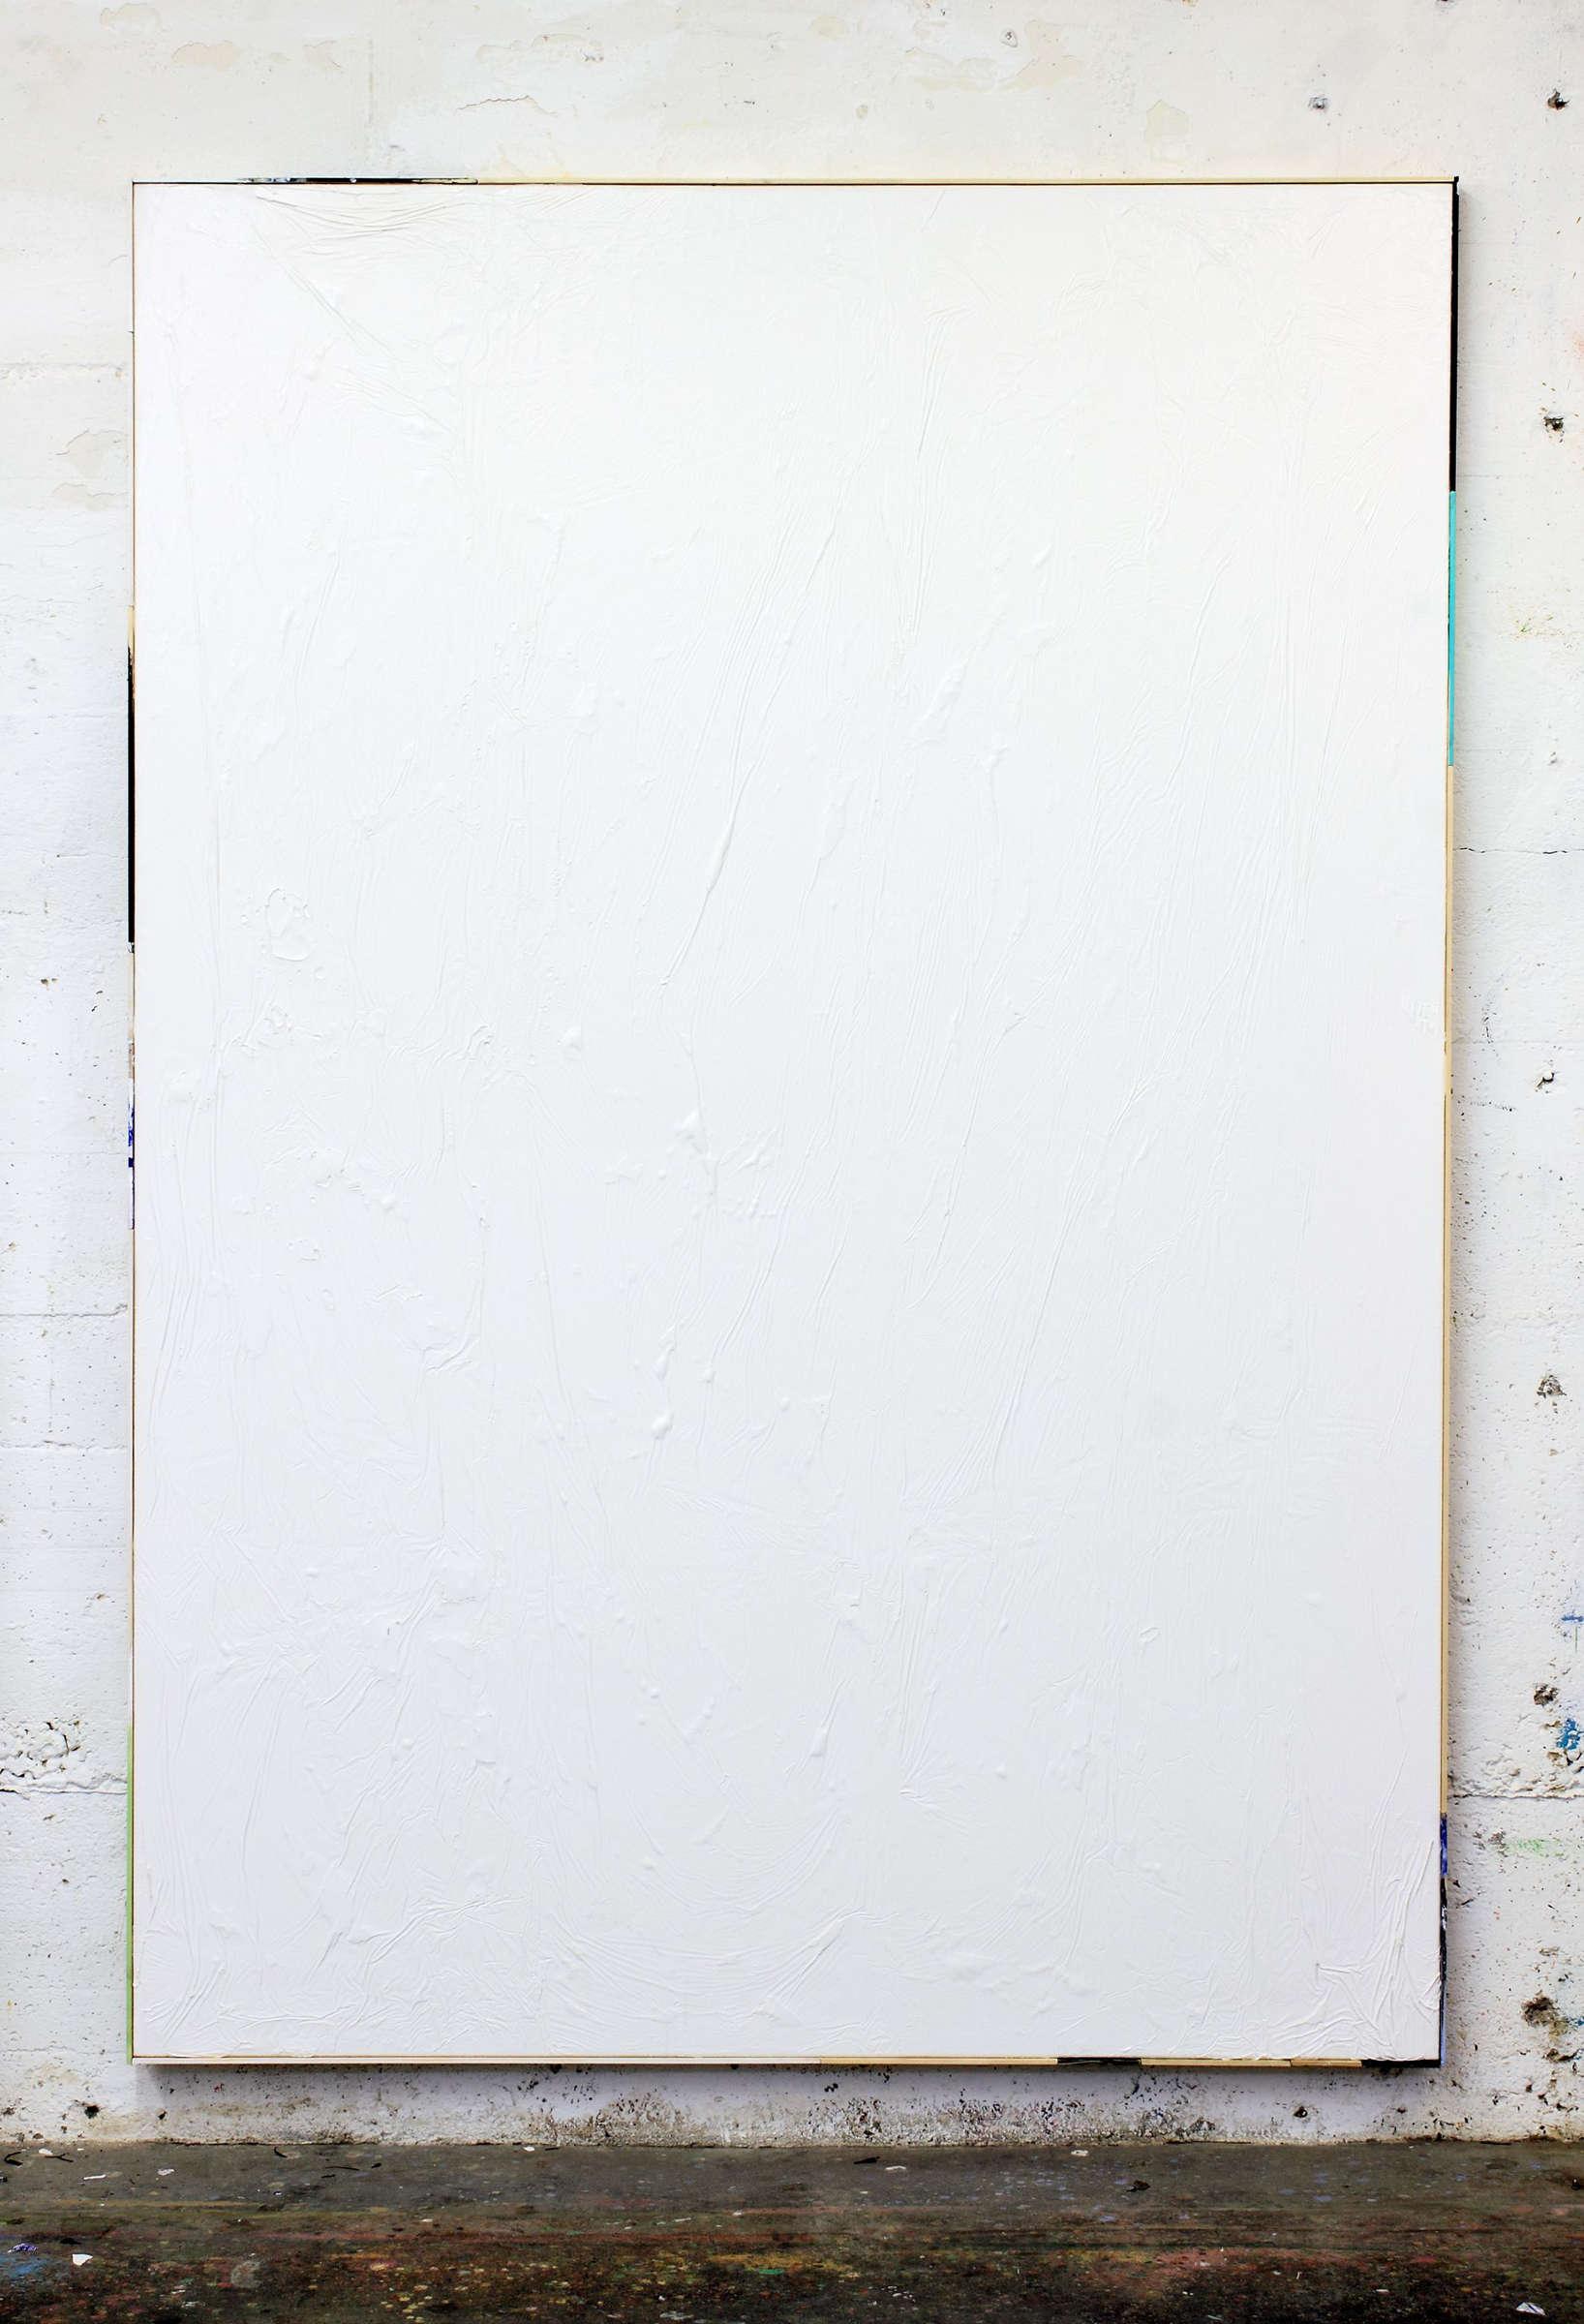 26_tiziano martini, 2015, untitled, white acrylic on canvas, artist frame, cm 201x141, studioView Duesseldorf